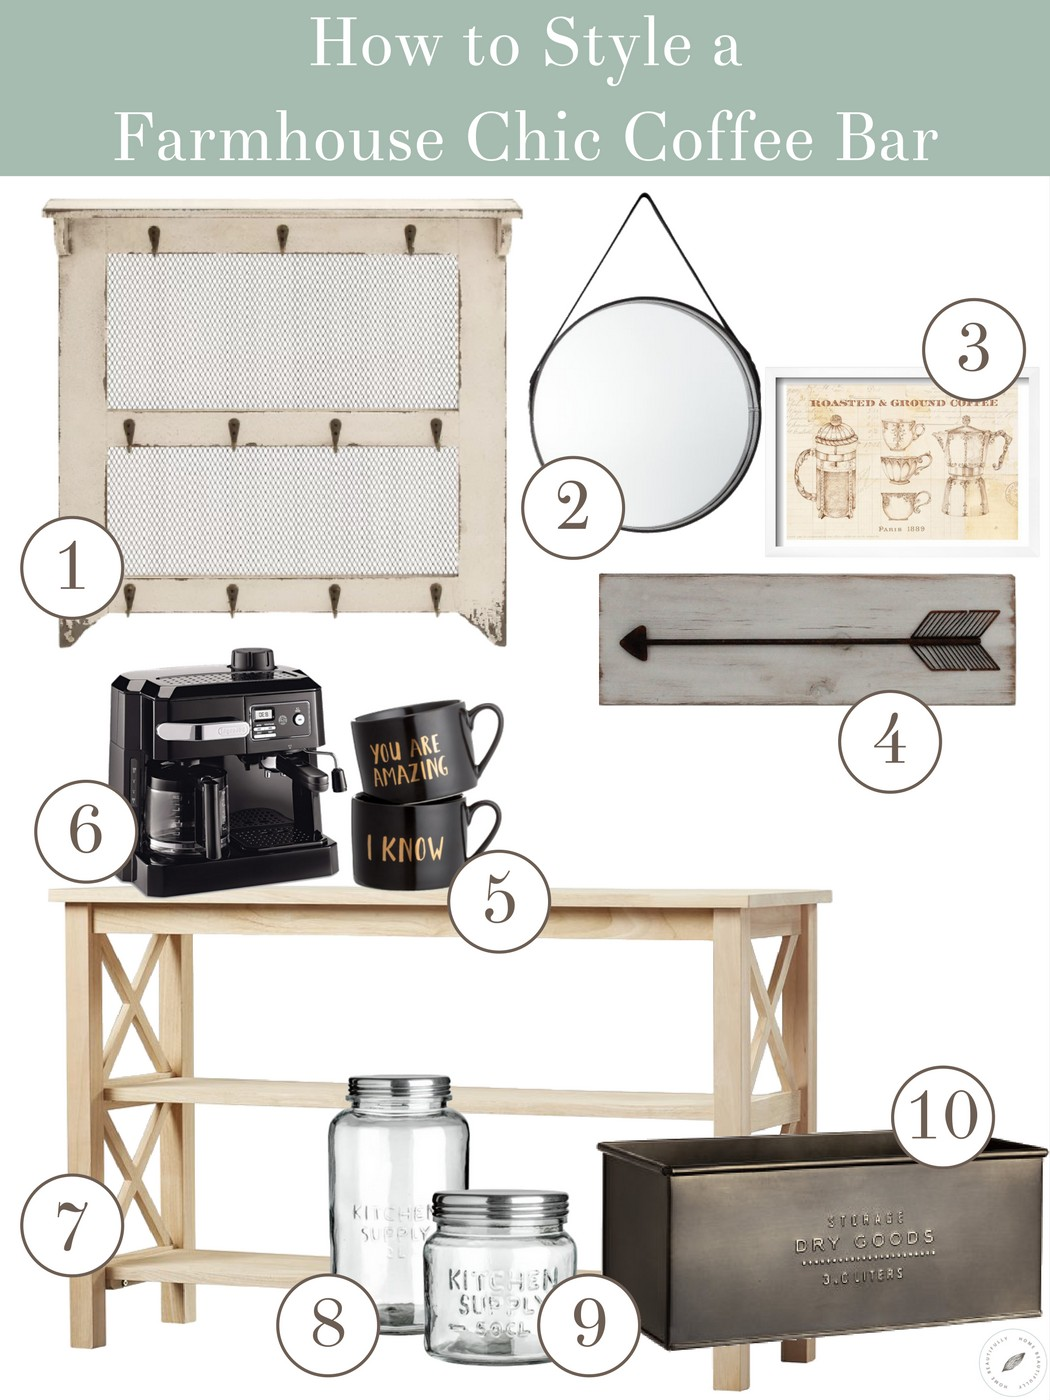 How to Style a Farmhouse Chic Coffee Bar